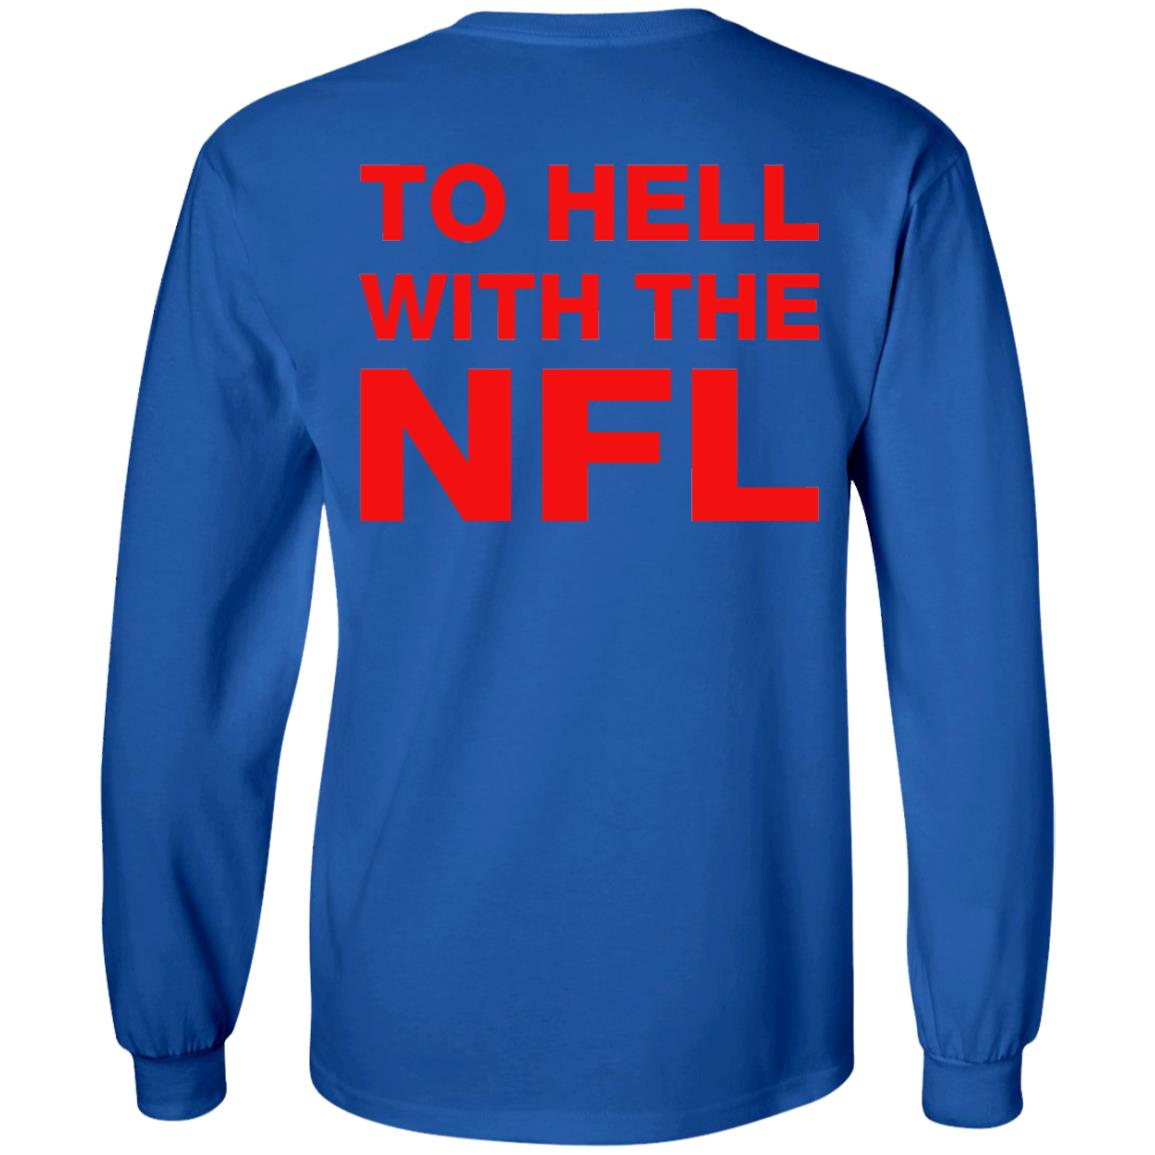 image 328 - To Hell With The NFL Shirt, Sweatshirt, Hoodie